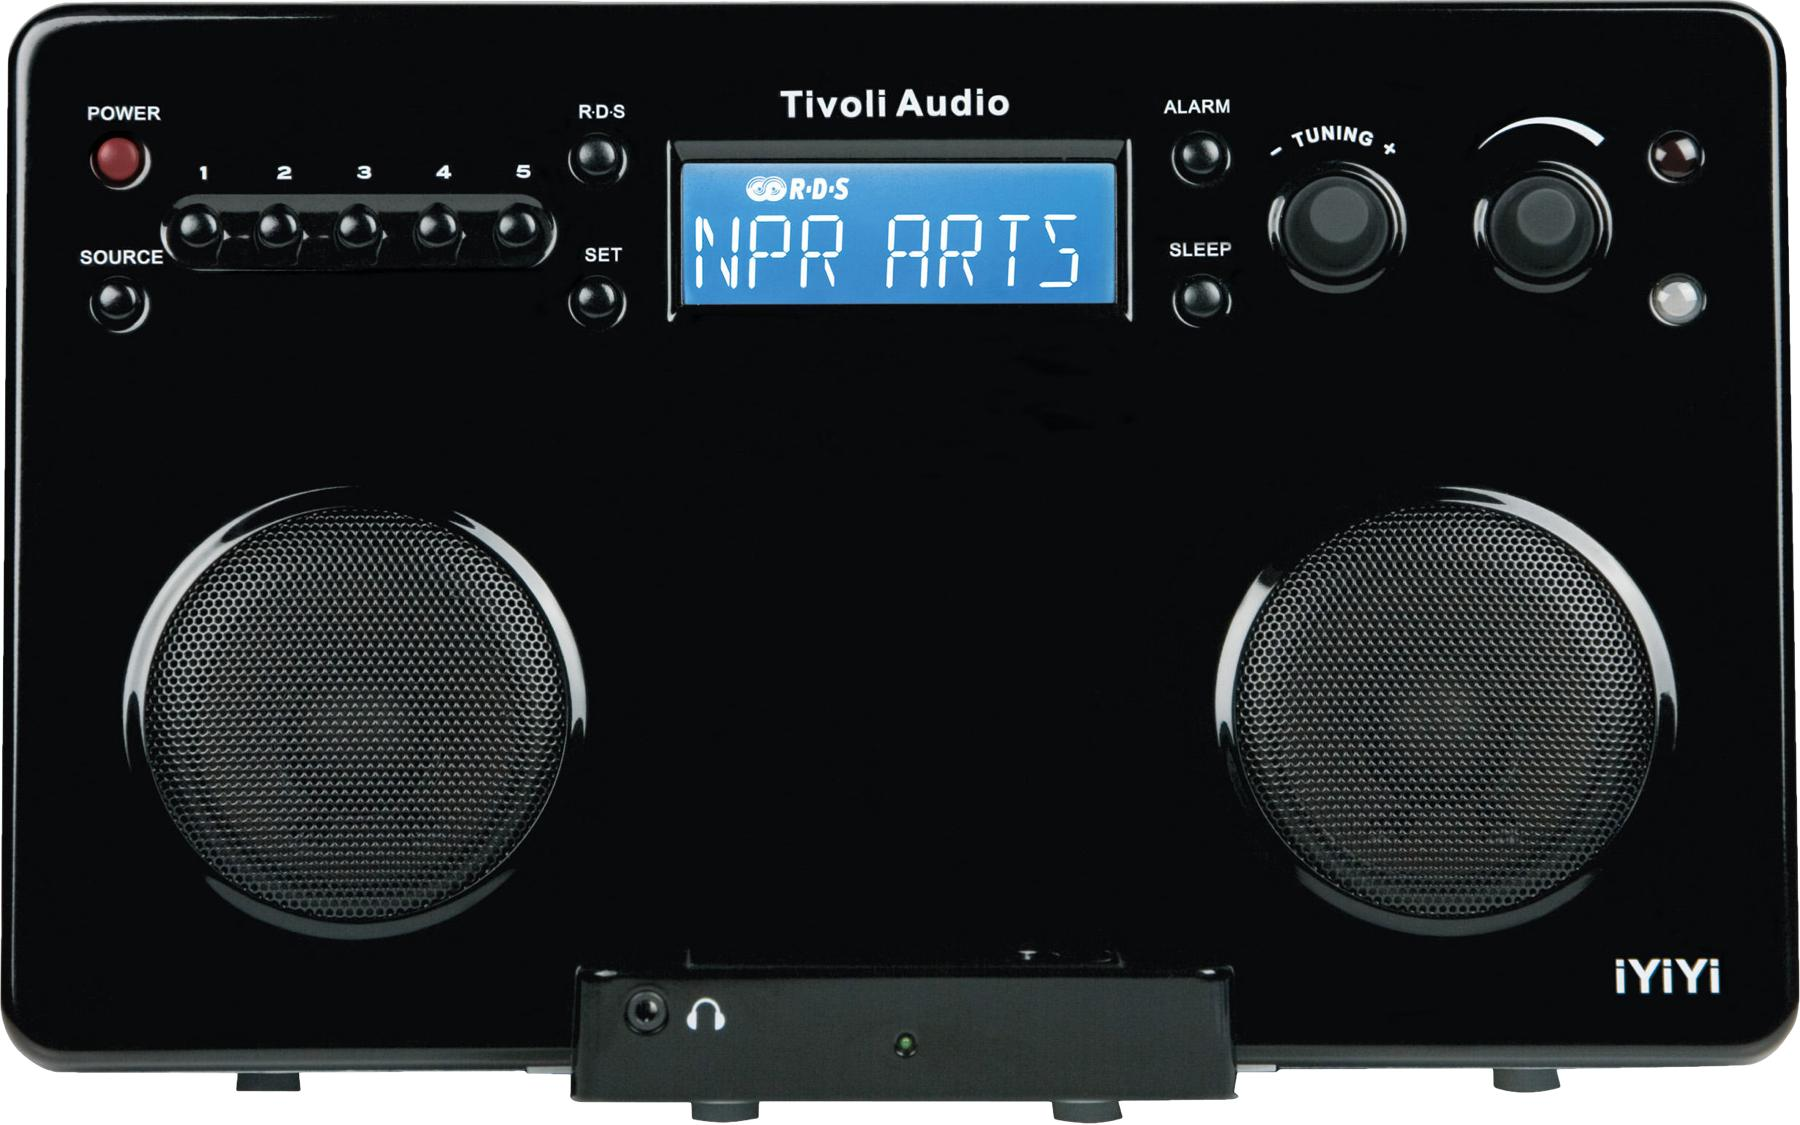 Tivoli Audio IYIYI